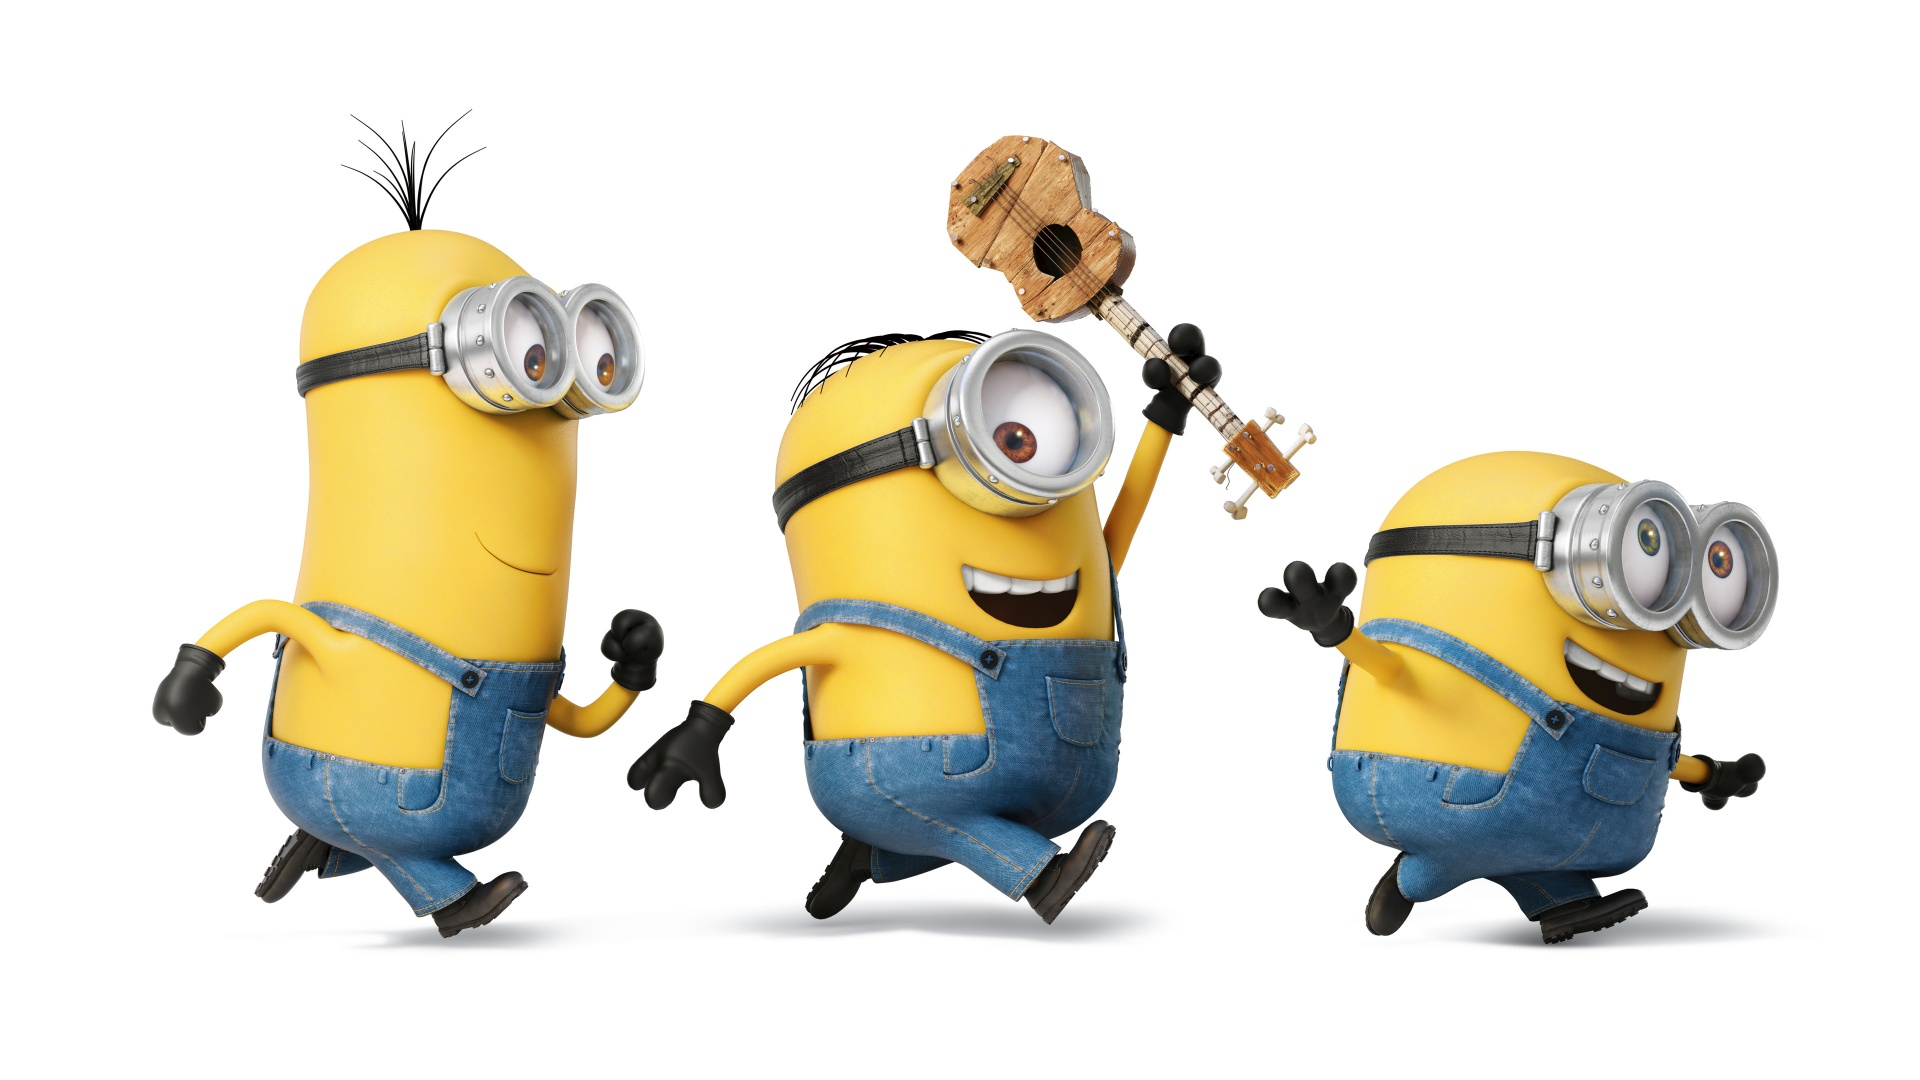 Minions Playing Wallpapers In Jpg Format For Free Download